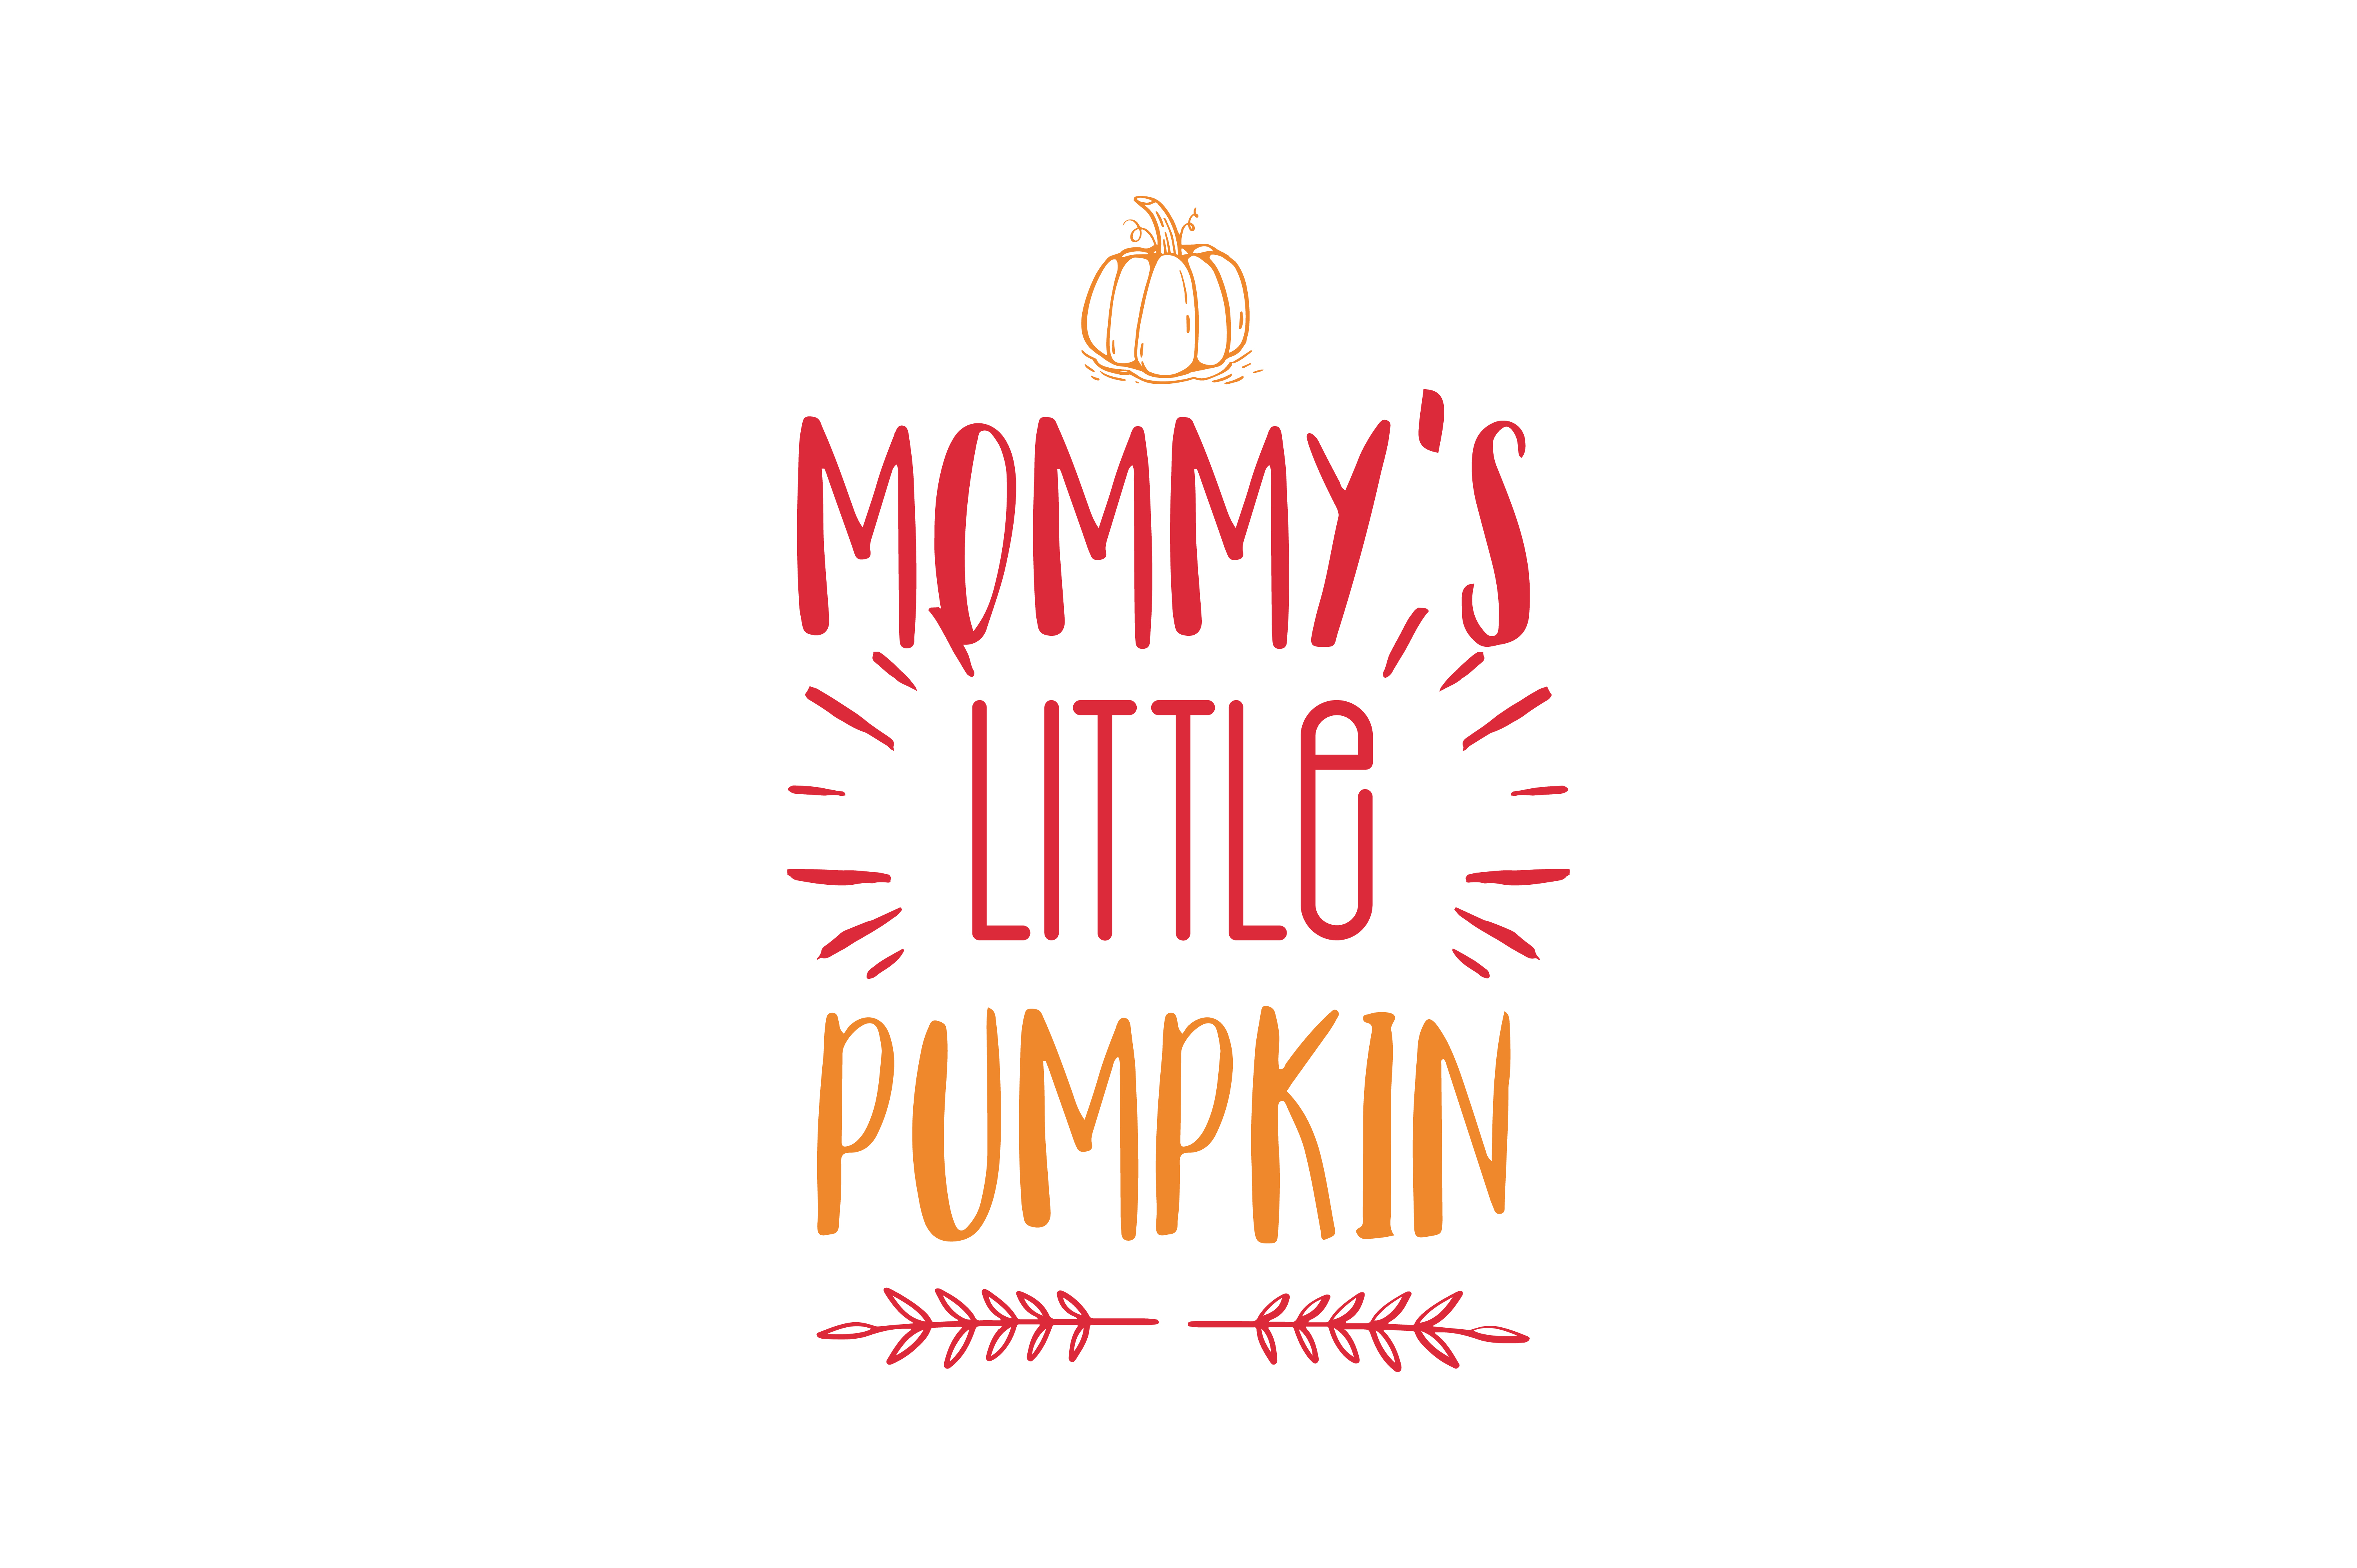 Mommy S Daddy S Little Pumpkin Quote Svg Cut Graphic By Thelucky Creative Fabrica